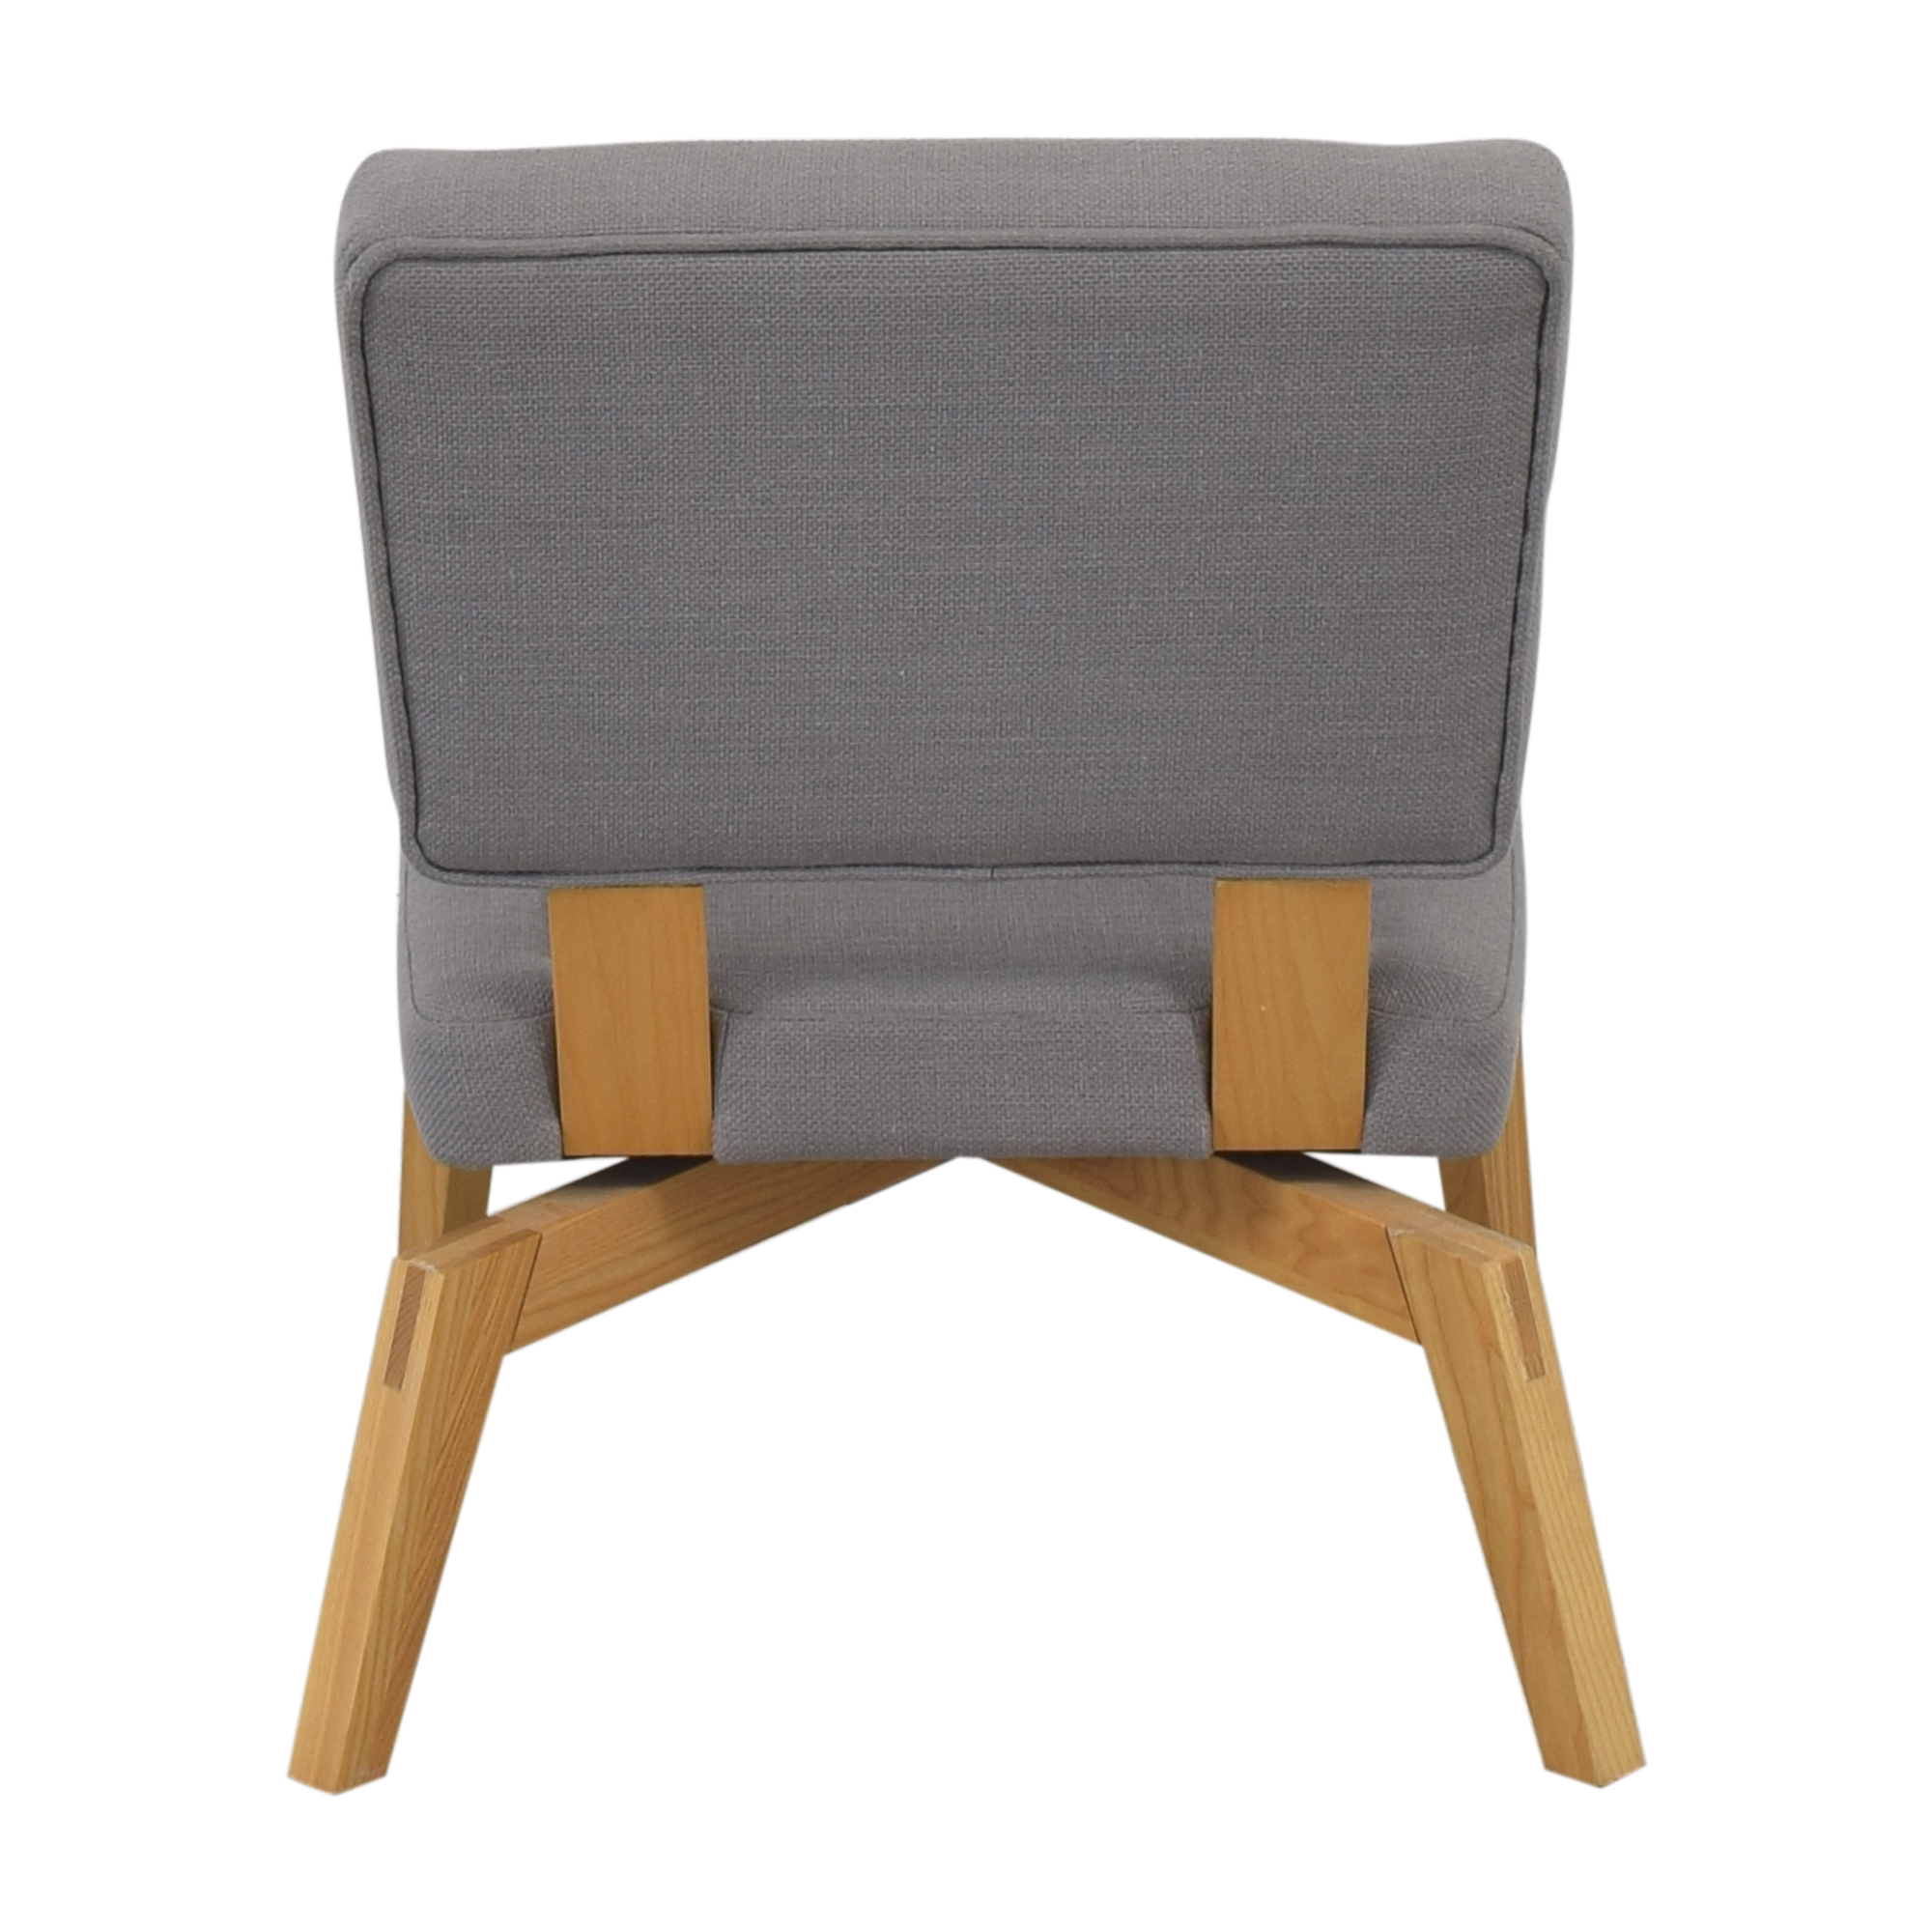 CB2 CB2 Lounge Chair with Ottoman pa